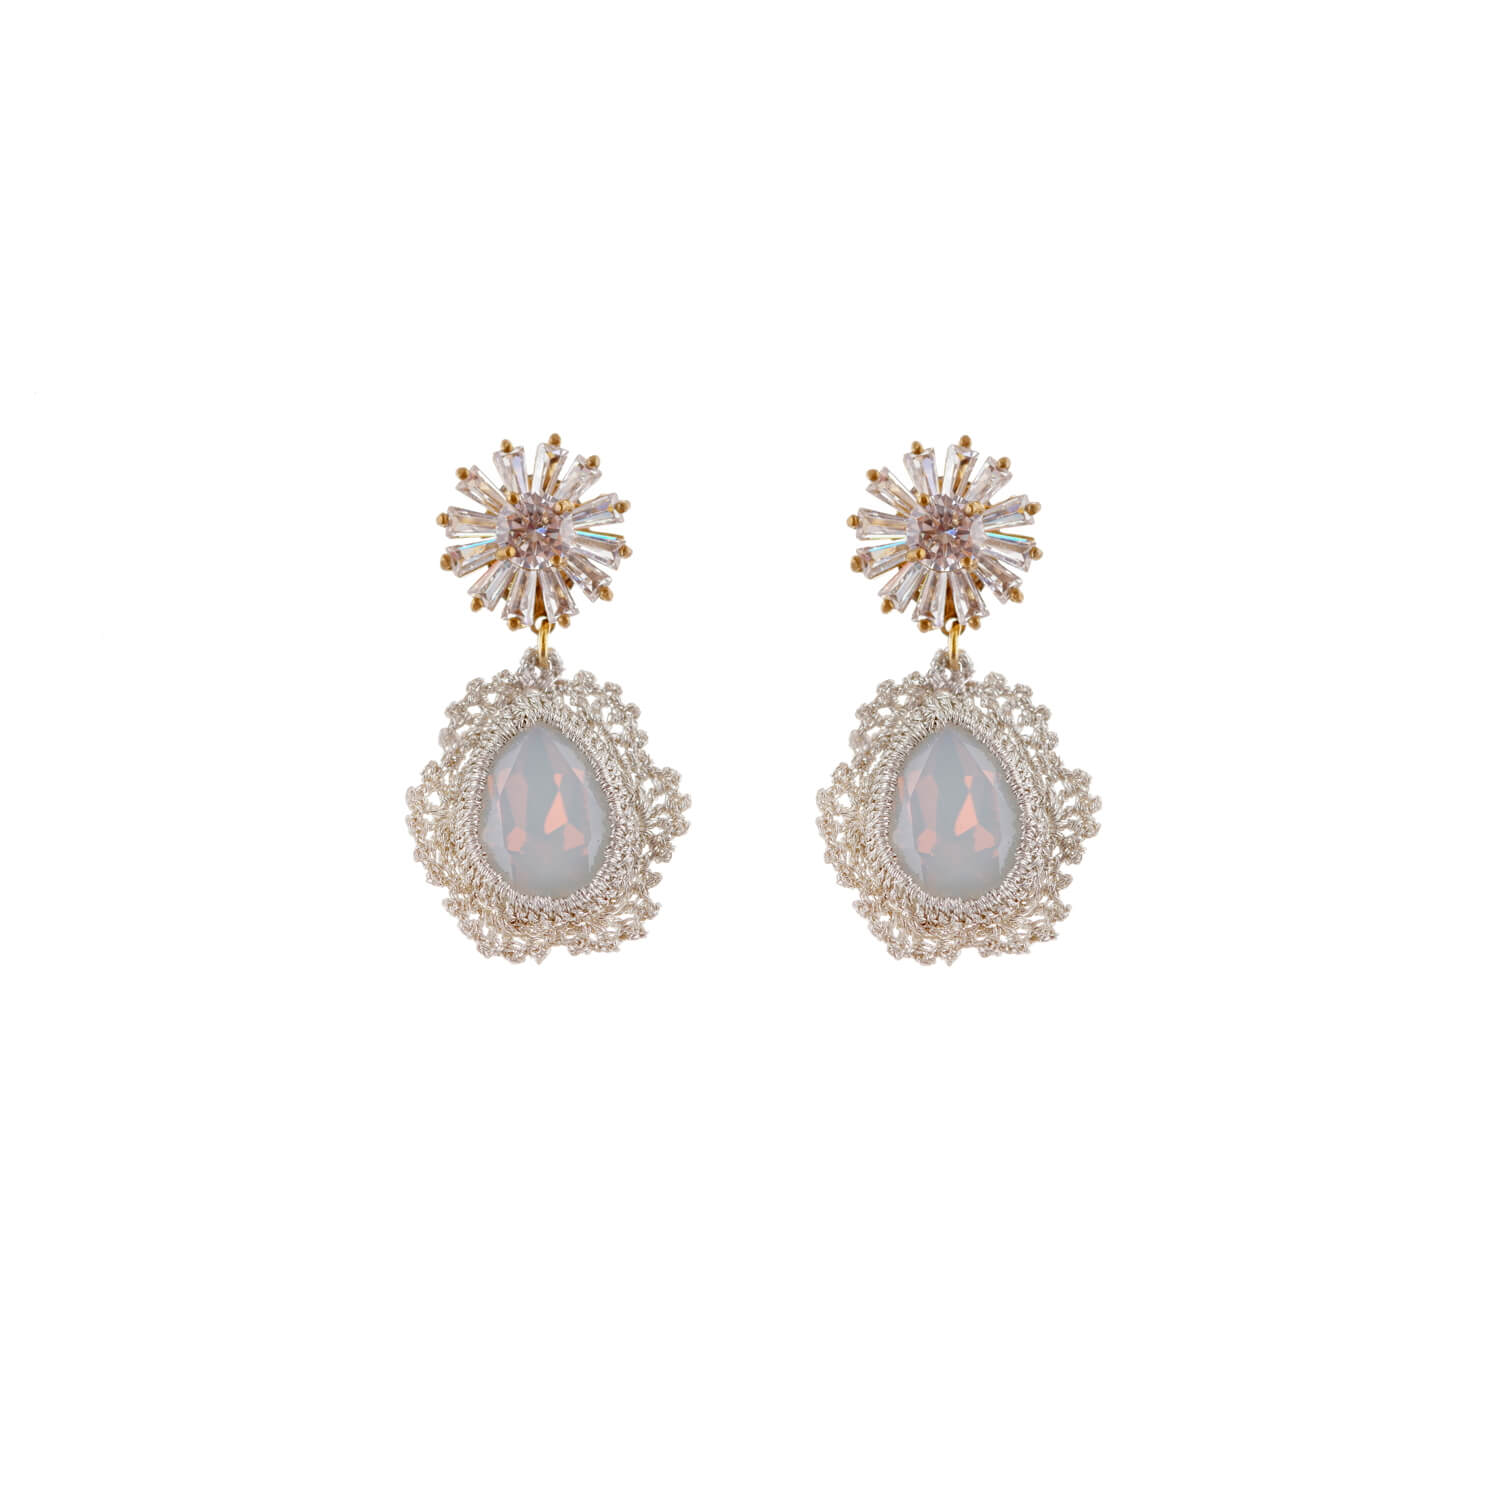 Disco Single Drop Large Crystal Earrings - Opal Starbust Lobe